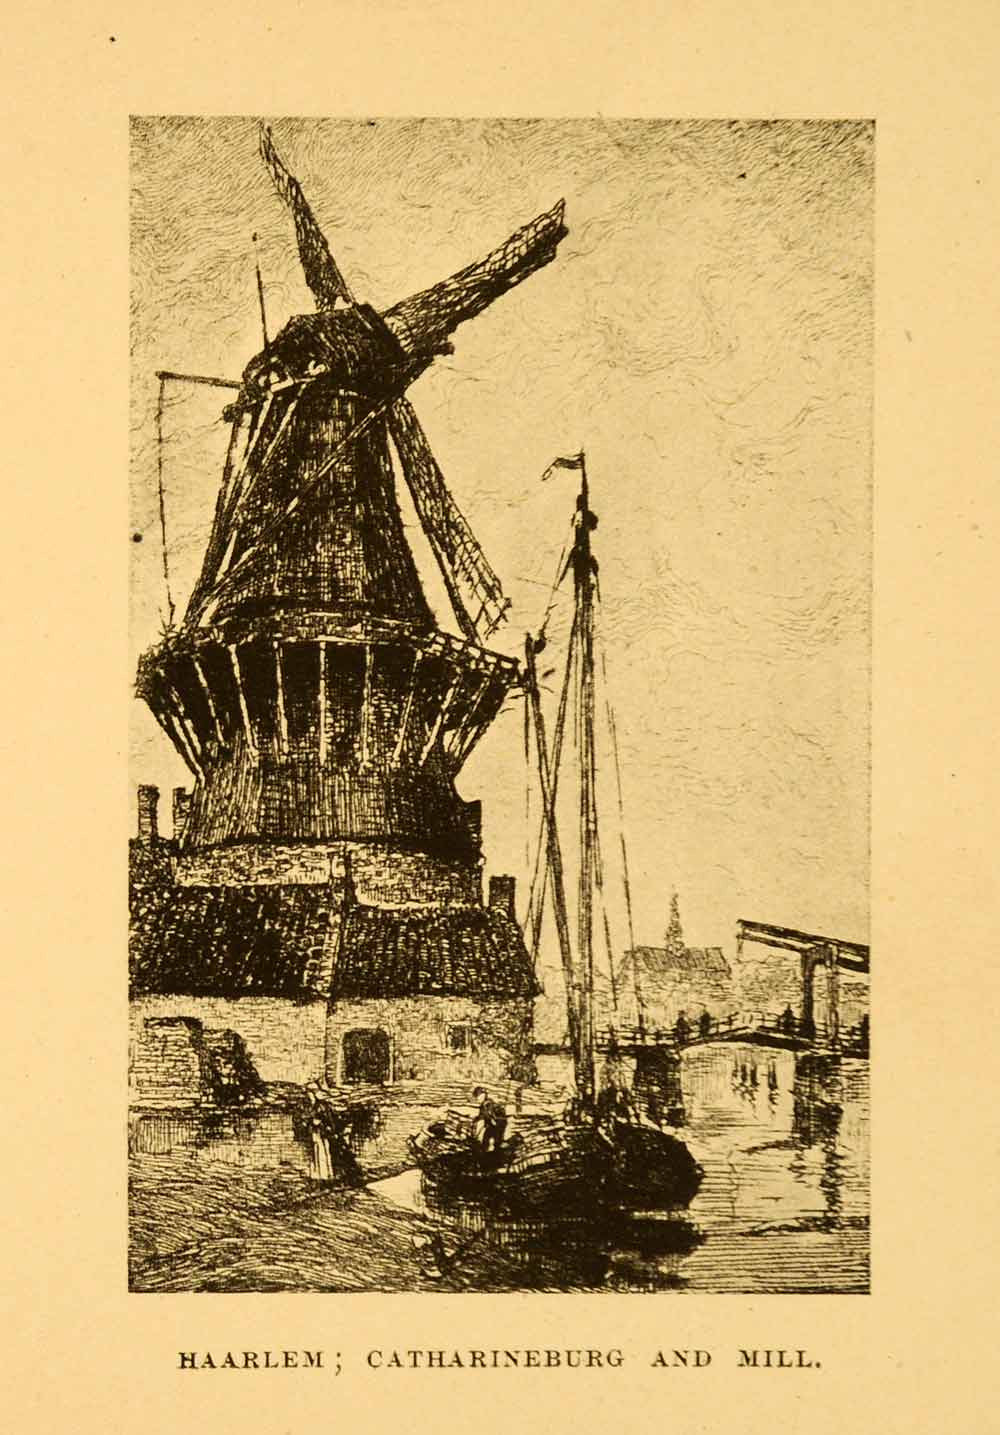 1908 Print Netherlands Holland Haarlem Catharineburg Windmill Boat Sail XGI4 - Period Paper